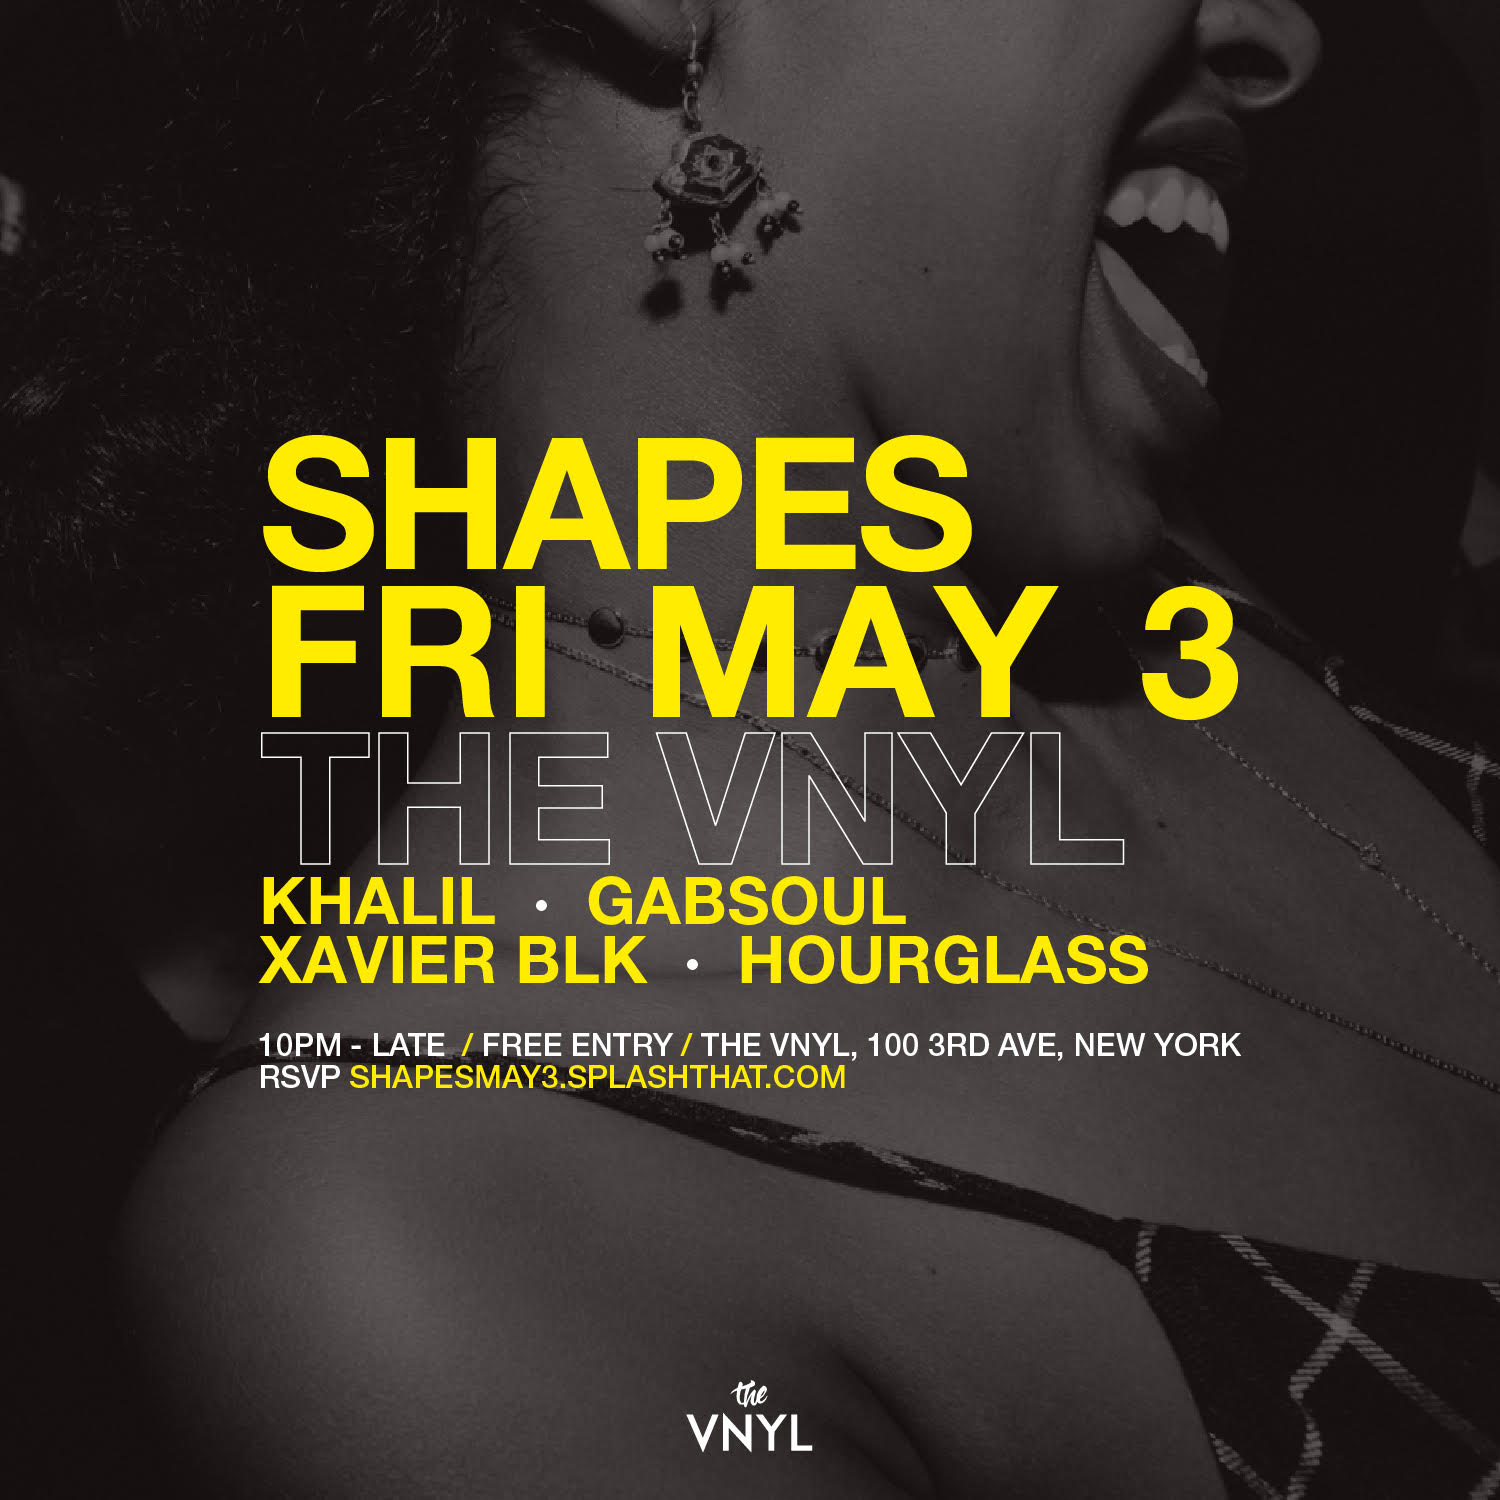 Shapes flyer.jpg